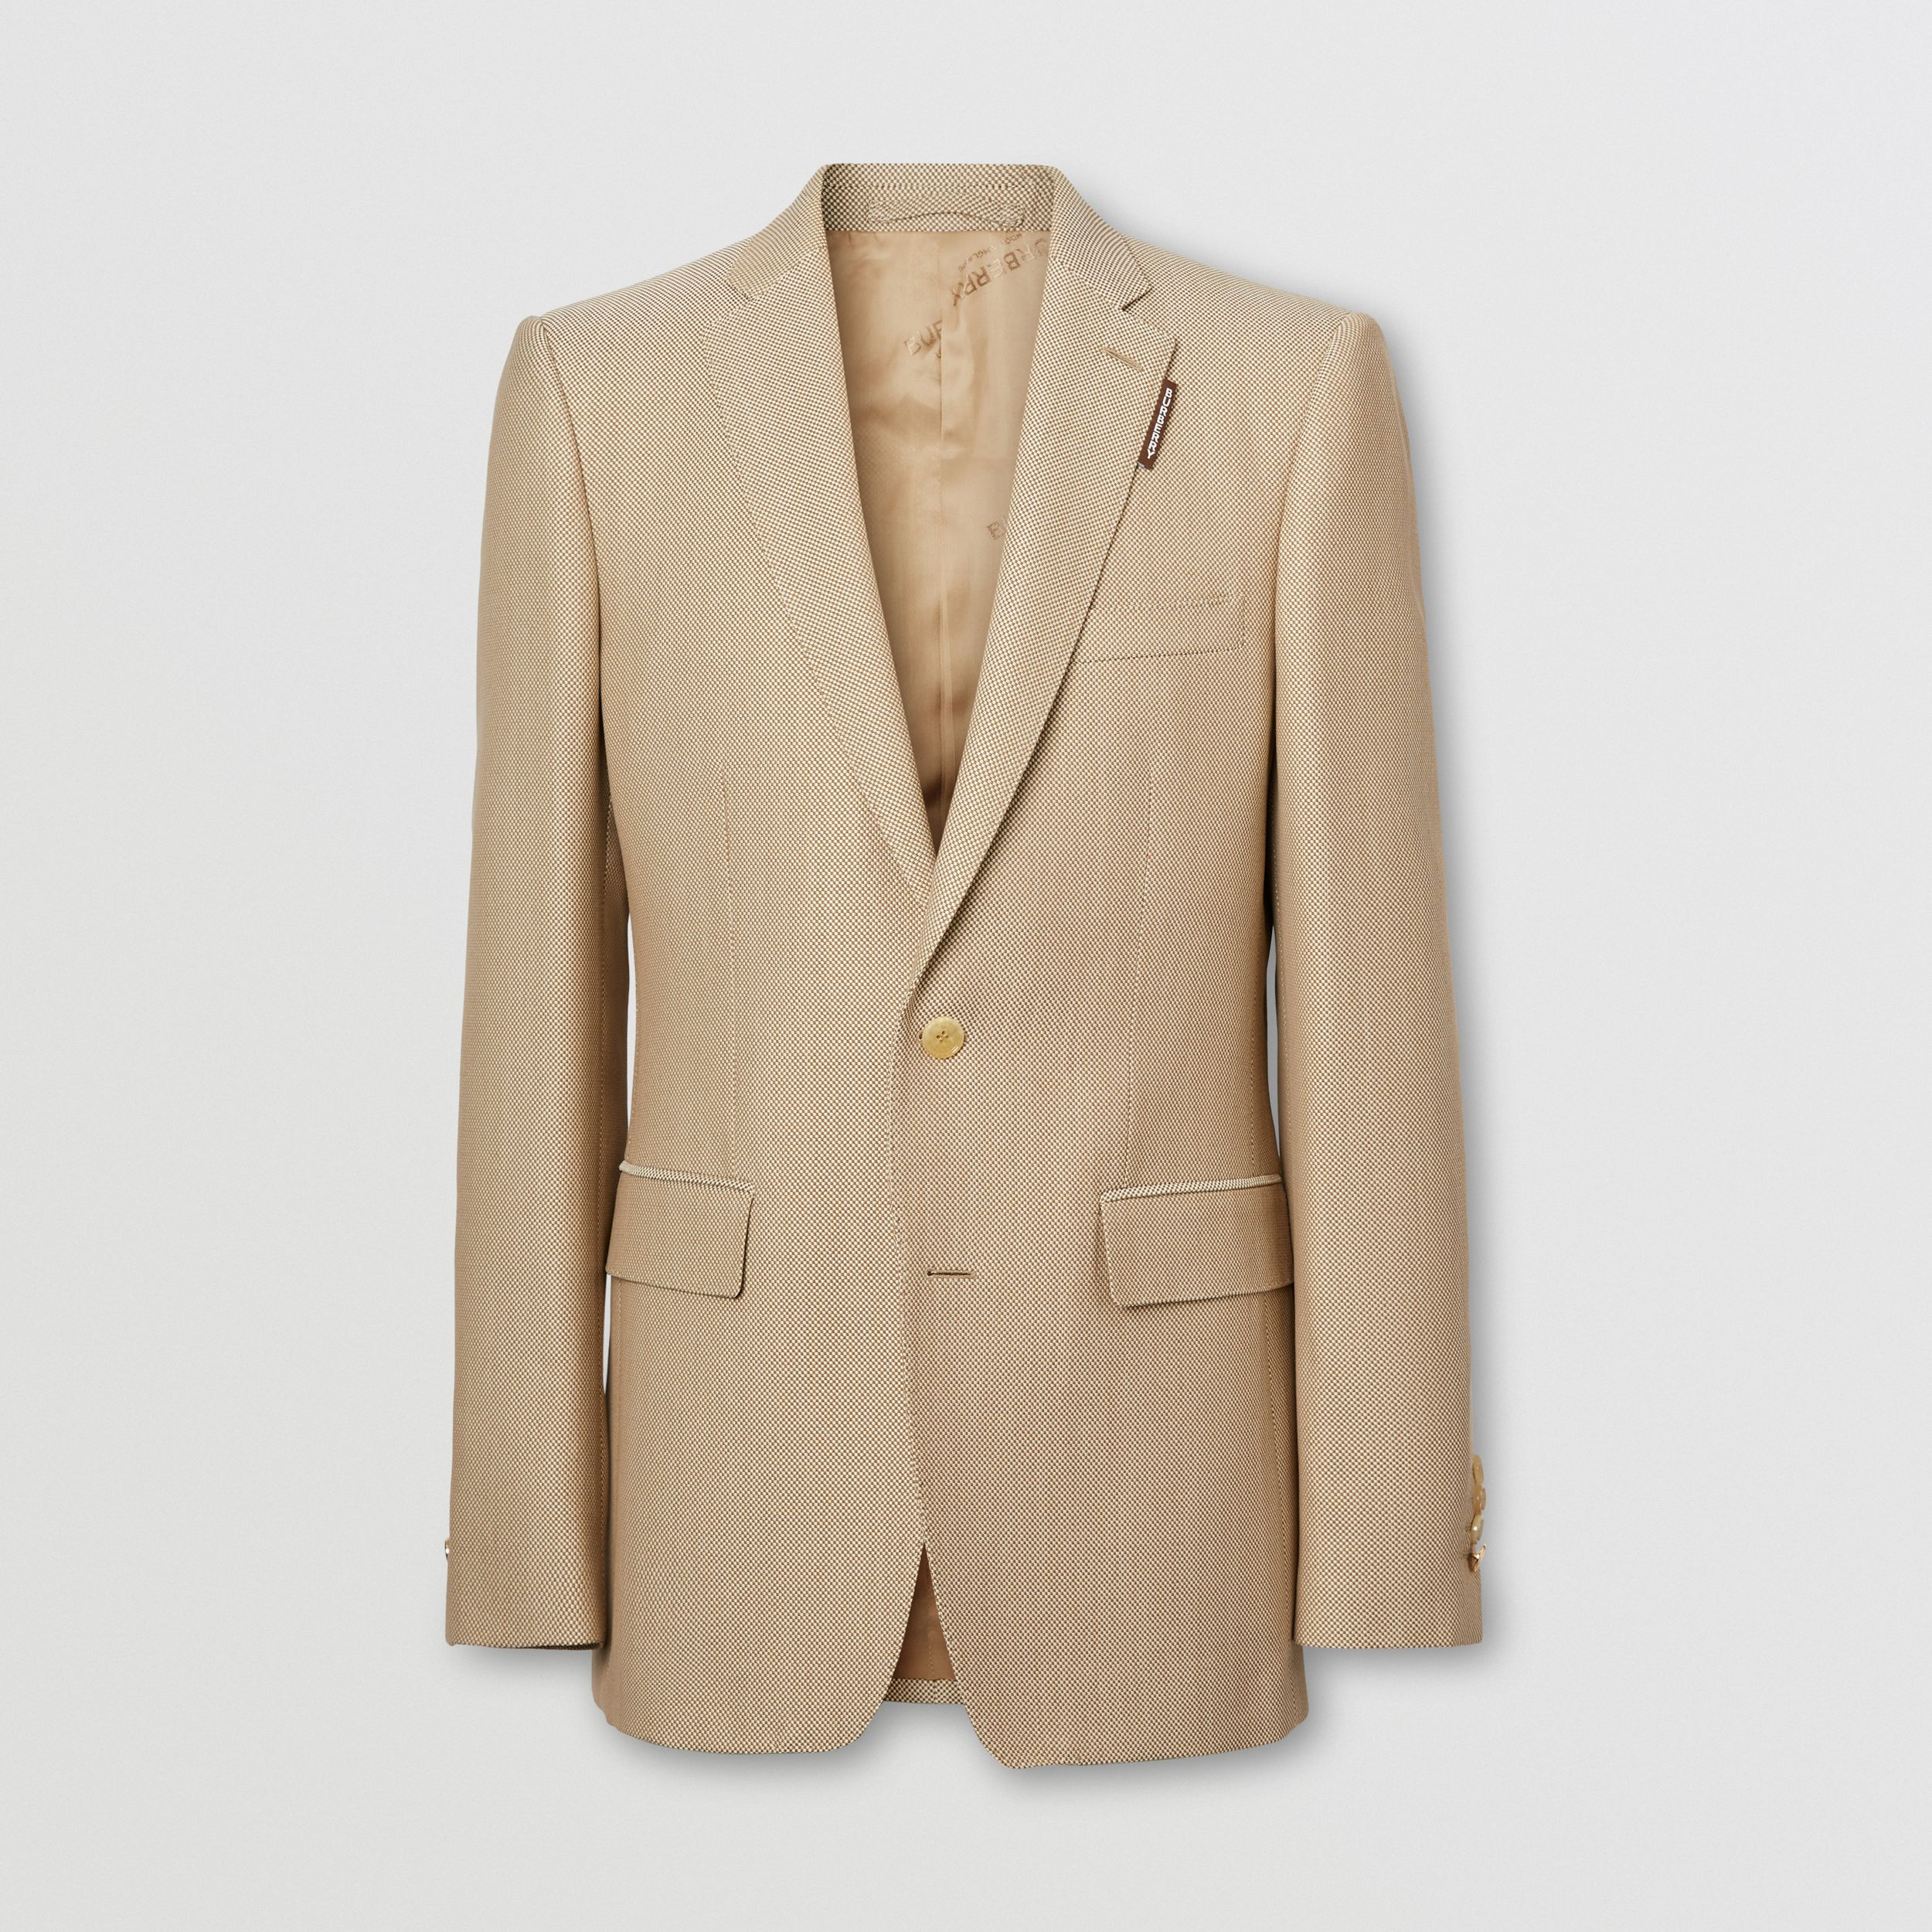 English Fit Technical Wool Canvas Tailored Jacket in Dusty Sand - Men | Burberry United States - 4